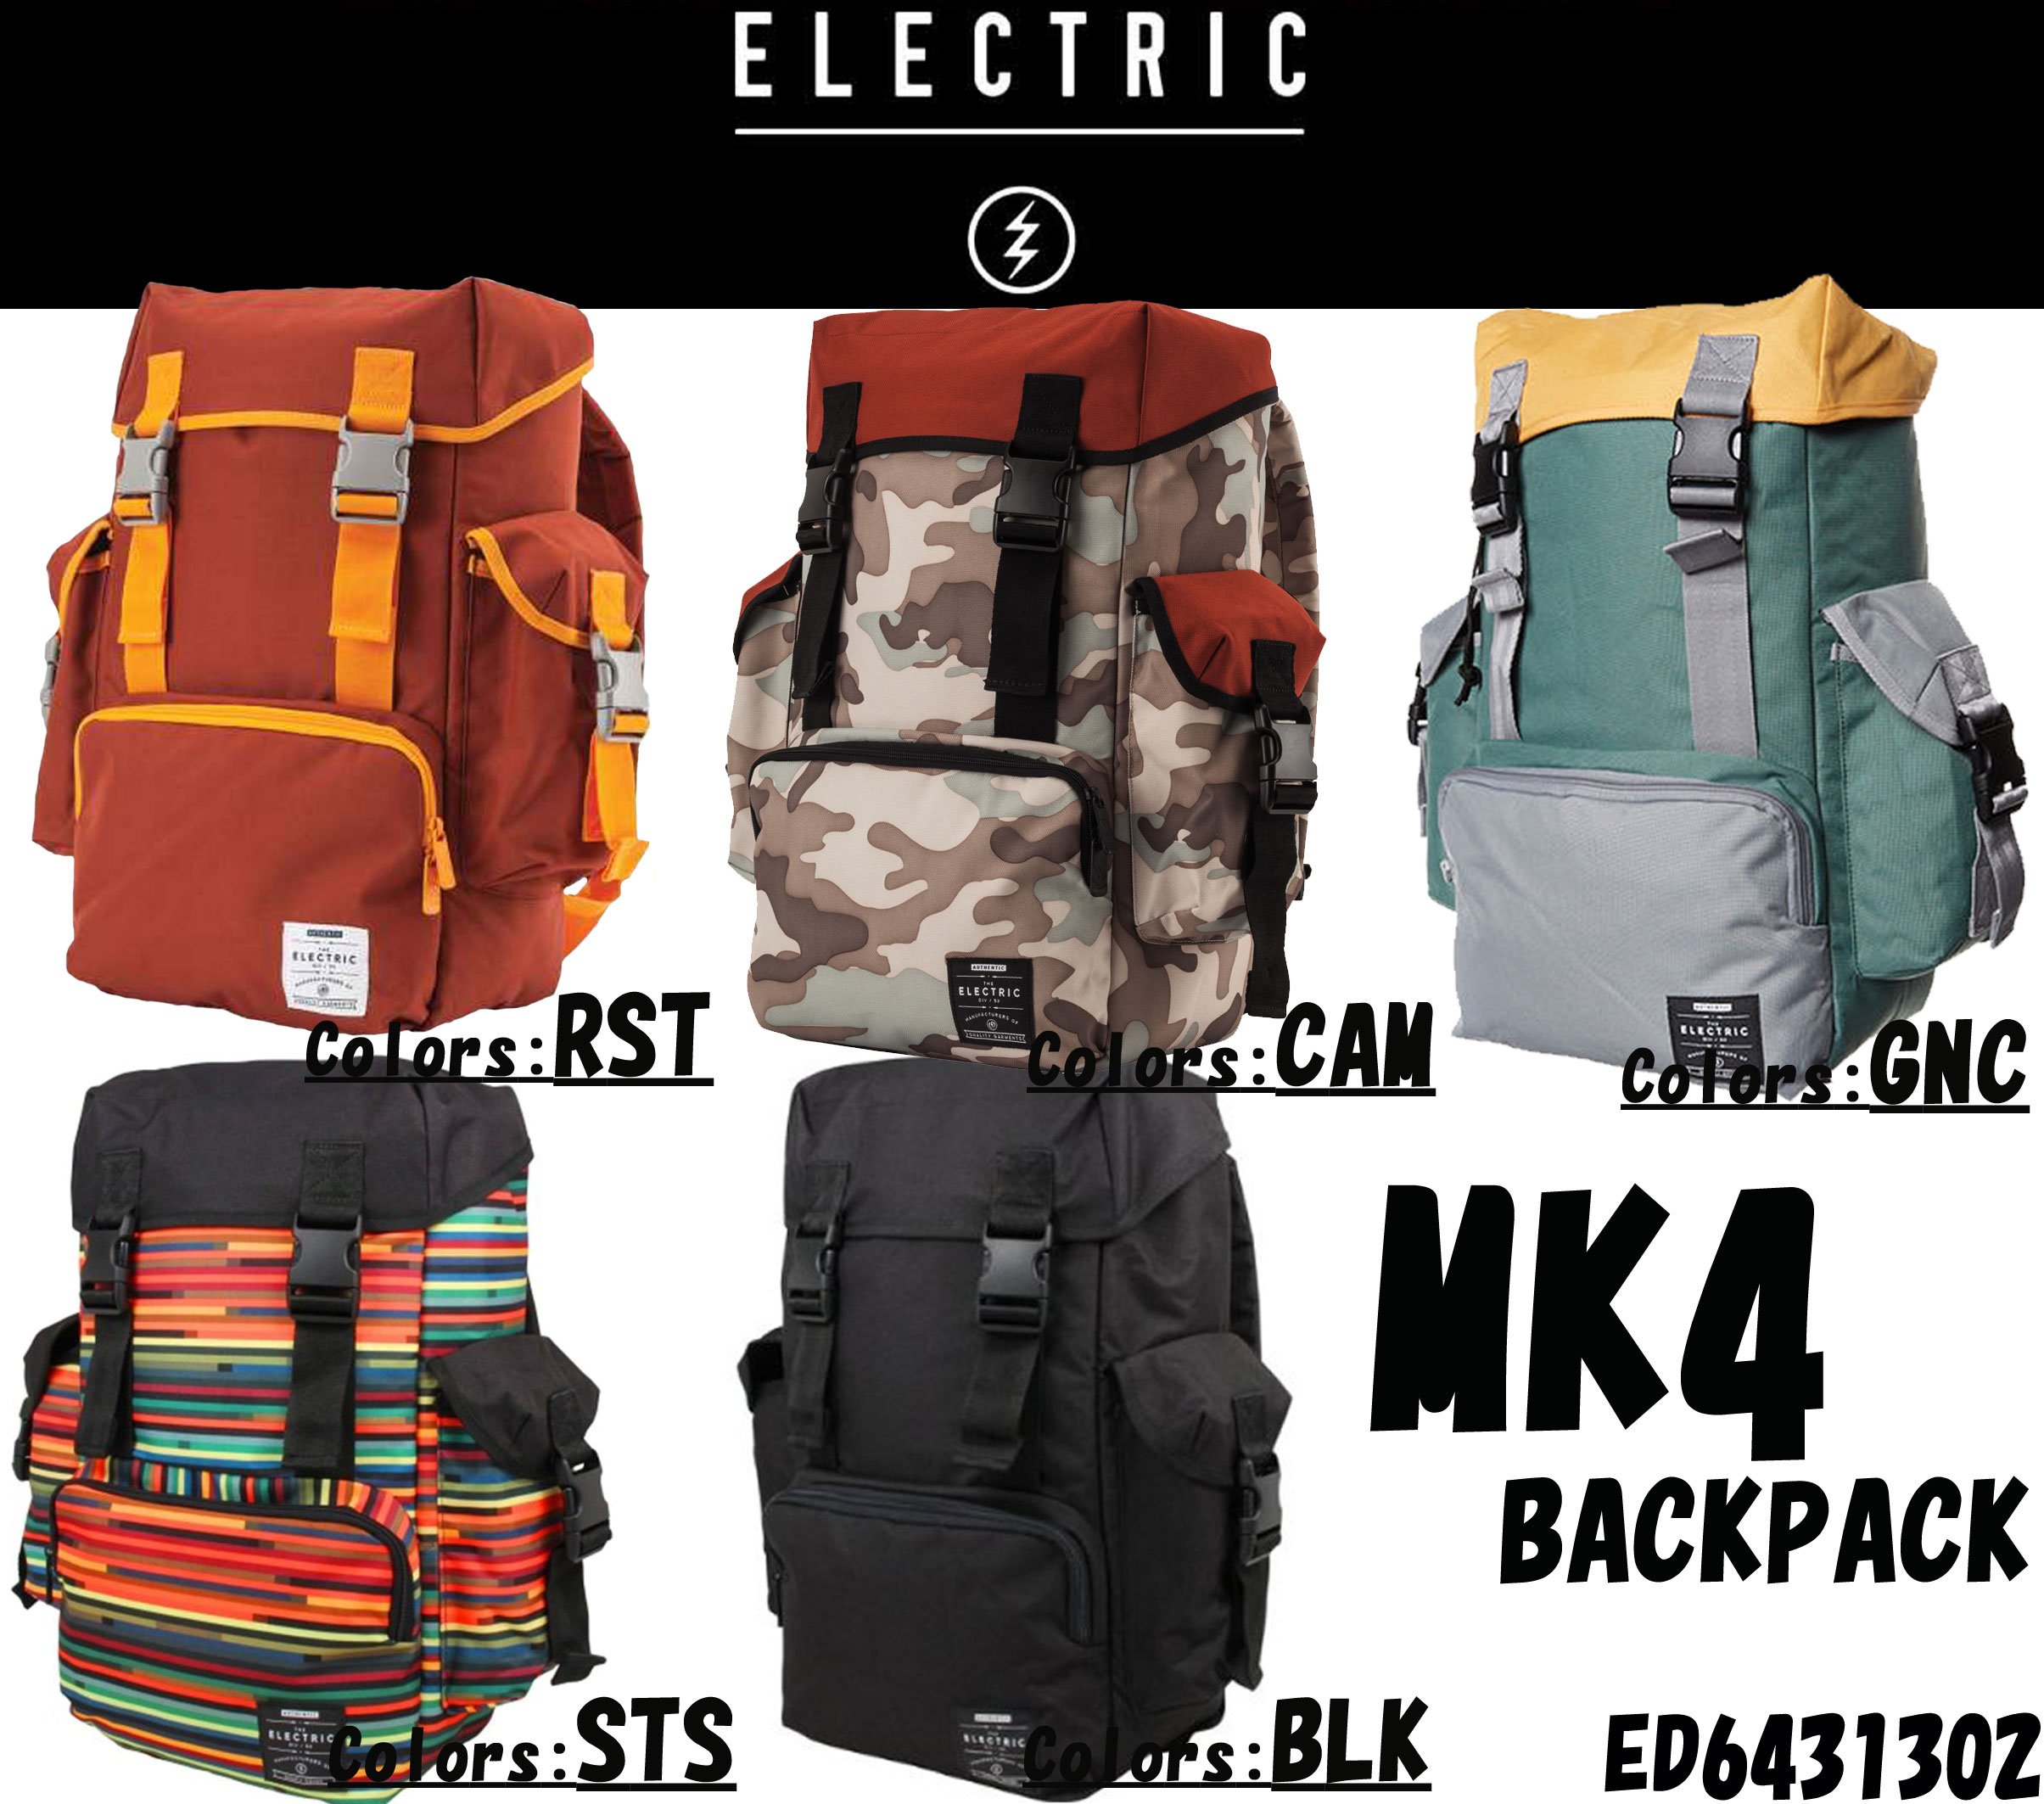 ed6431302_electric_mk4_backpack_mein1